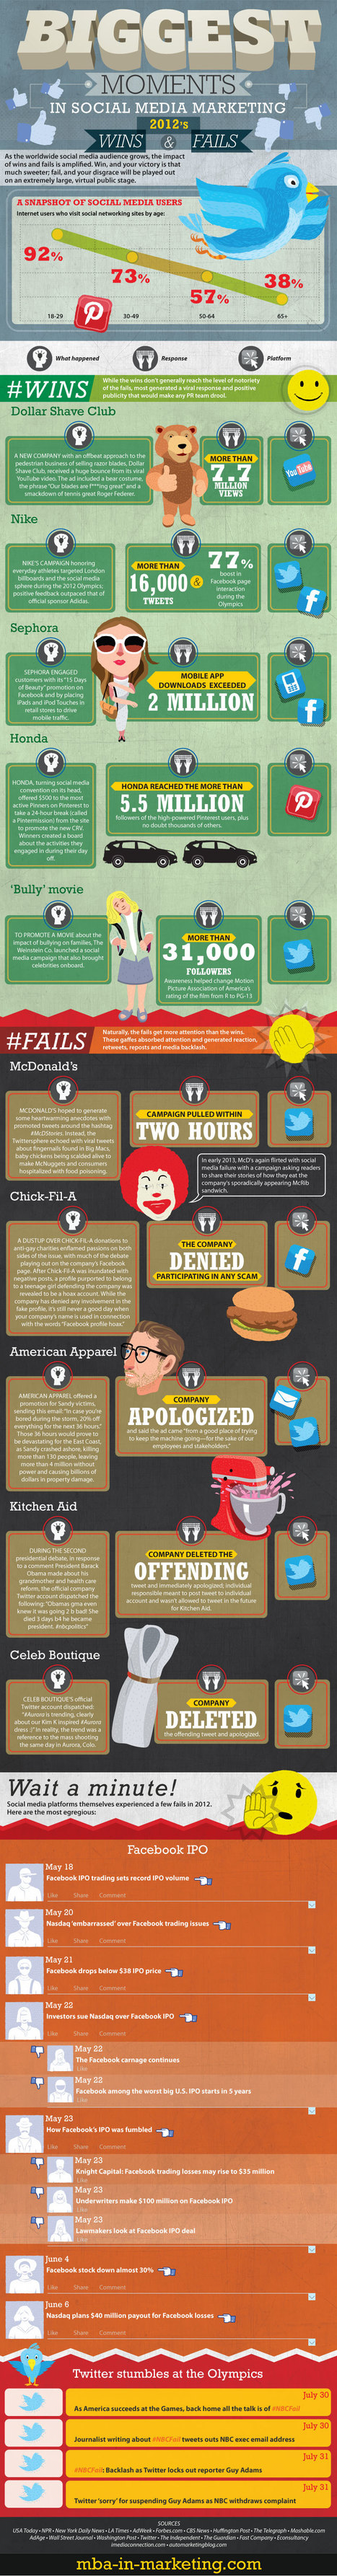 Biggest Moments in Social Media Marketing [infographic] | The Twinkie Awards | Scoop.it